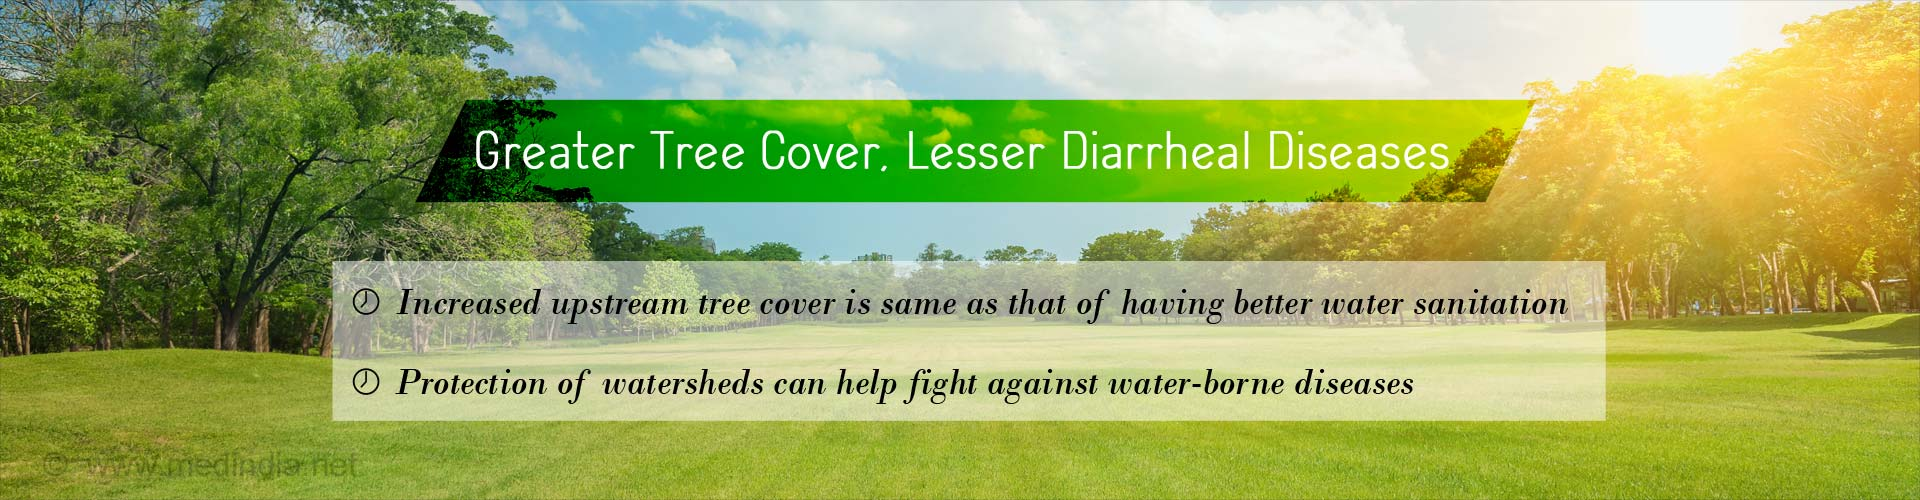 Greater Tree Cover can Lessen Diarrheal Diseases in Children